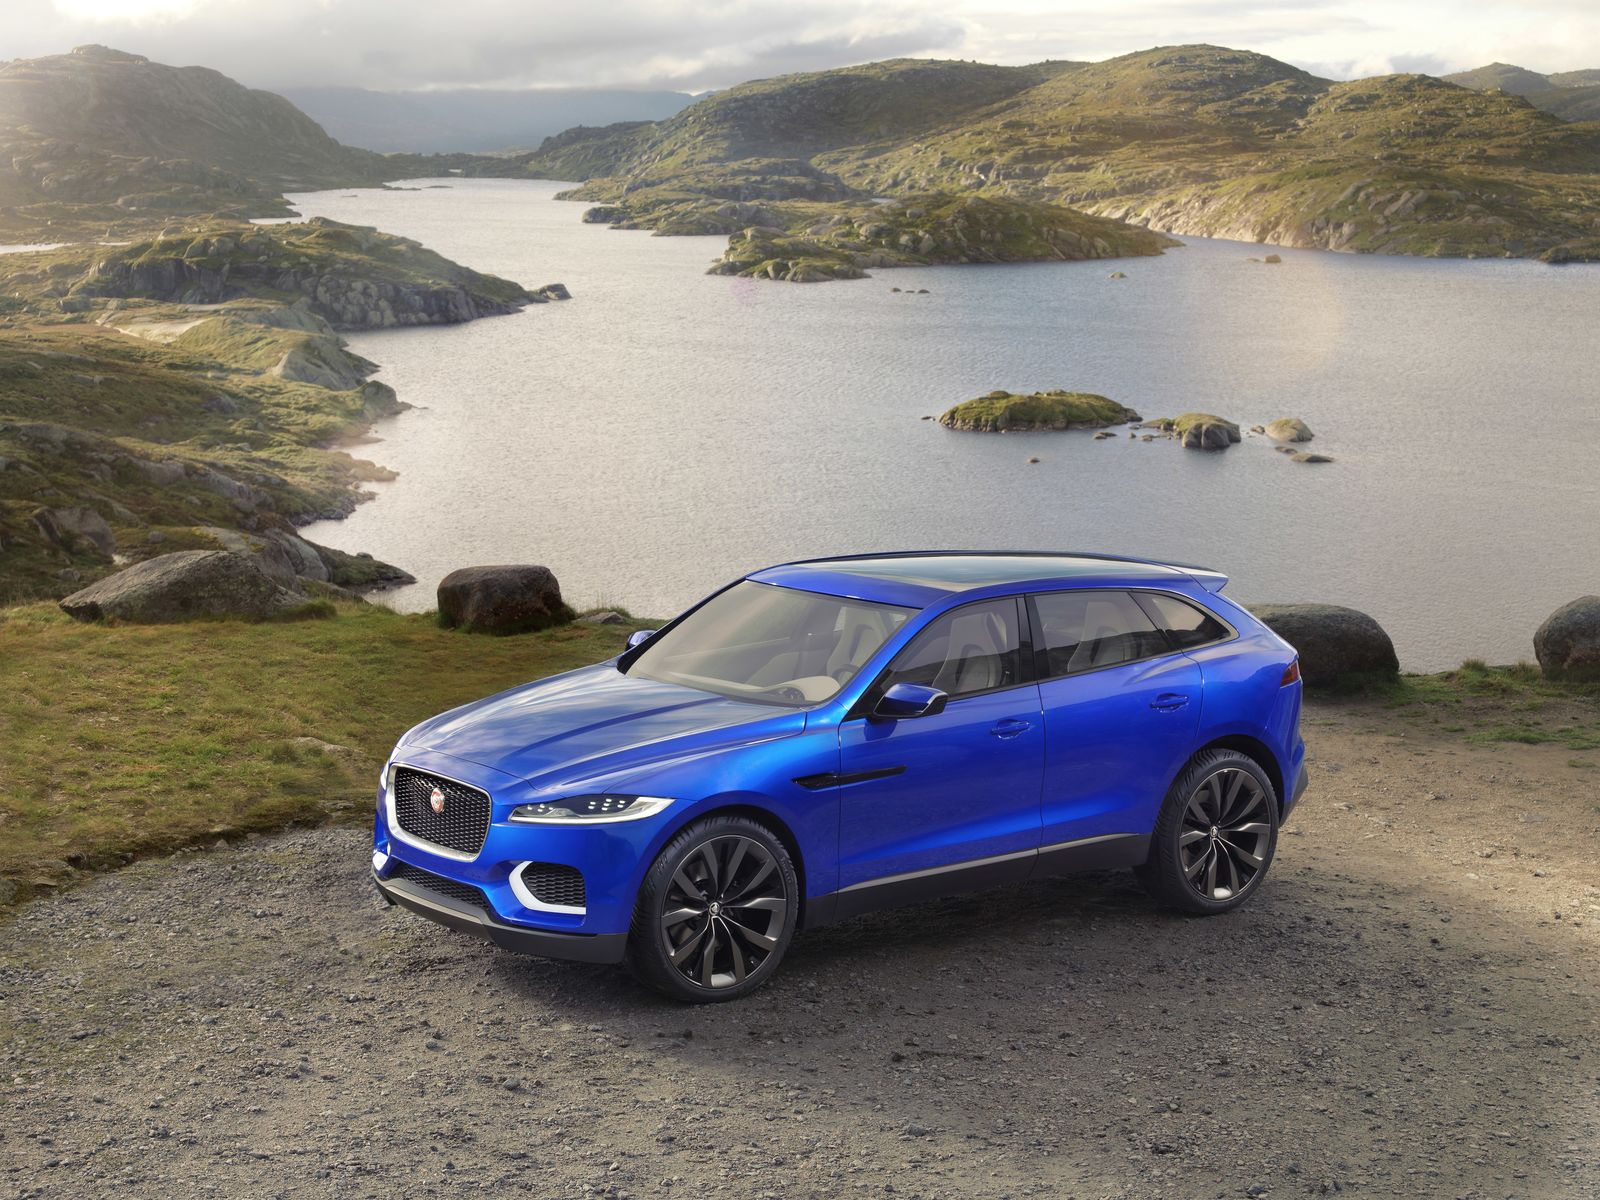 Jaguar F-Pace Wallpaper